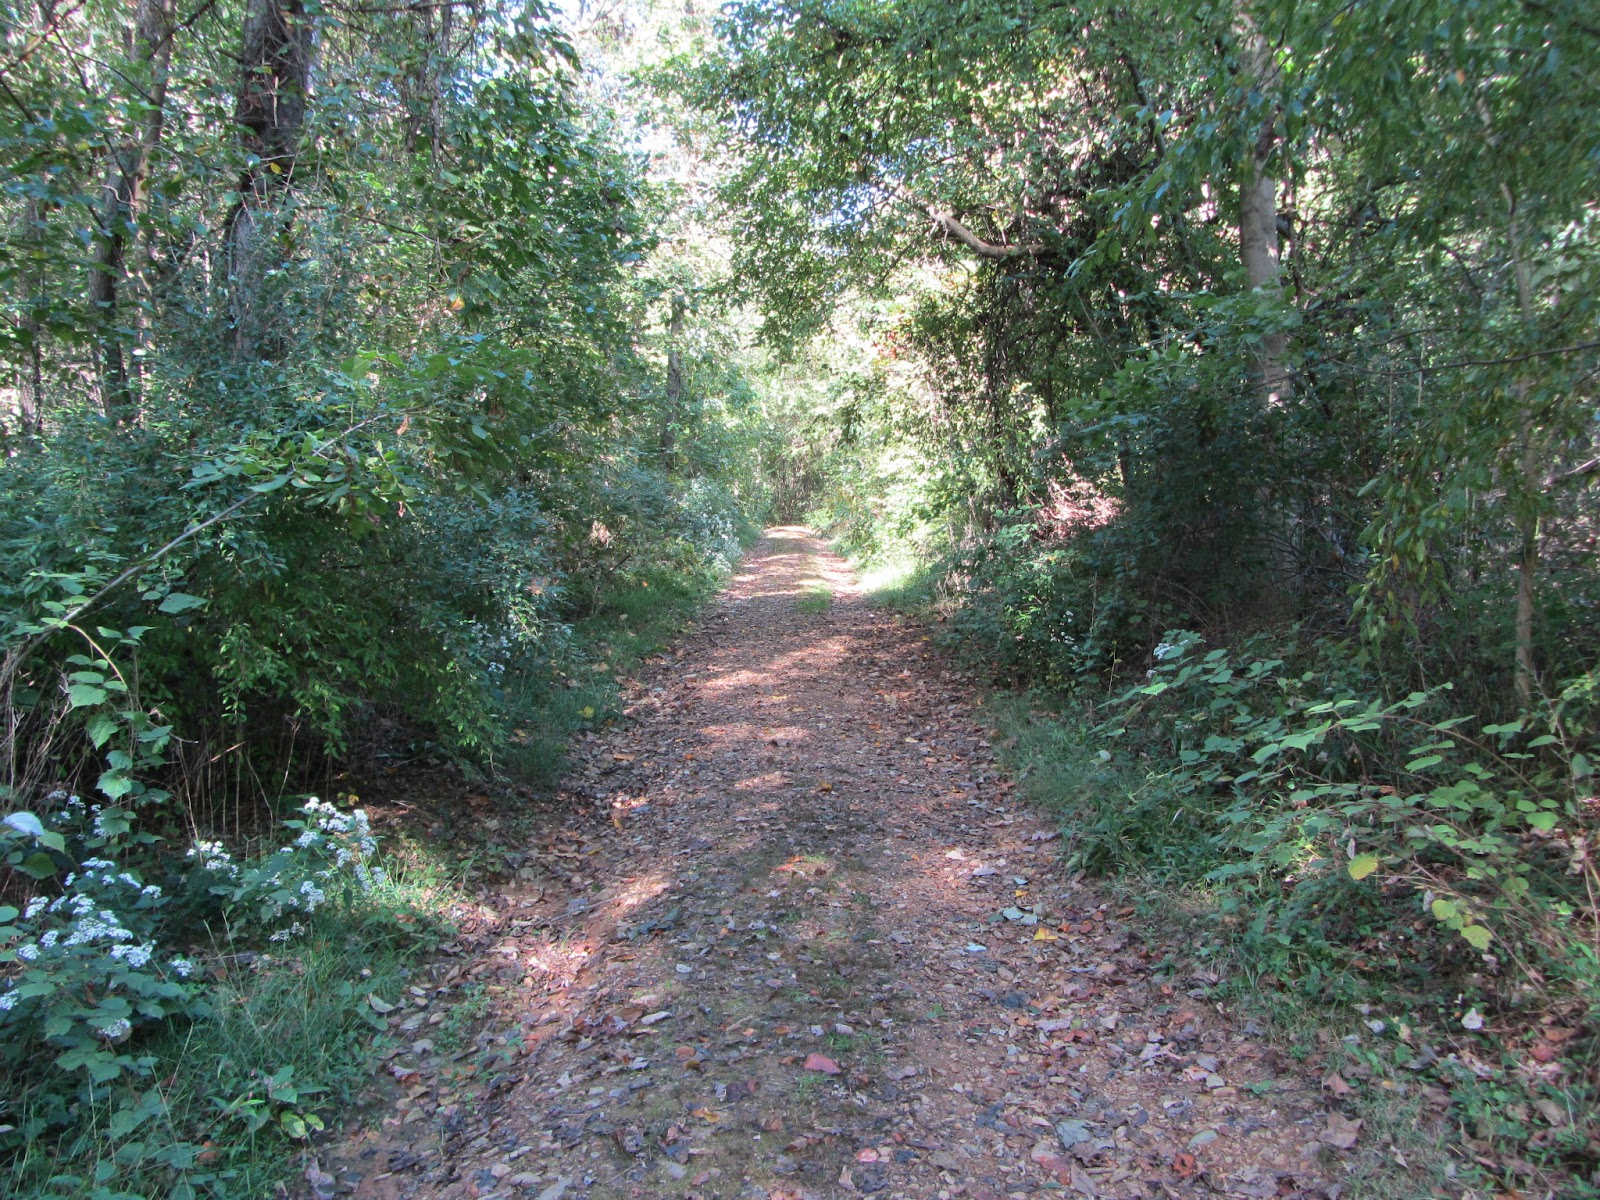 Wide dirt trail through the woods